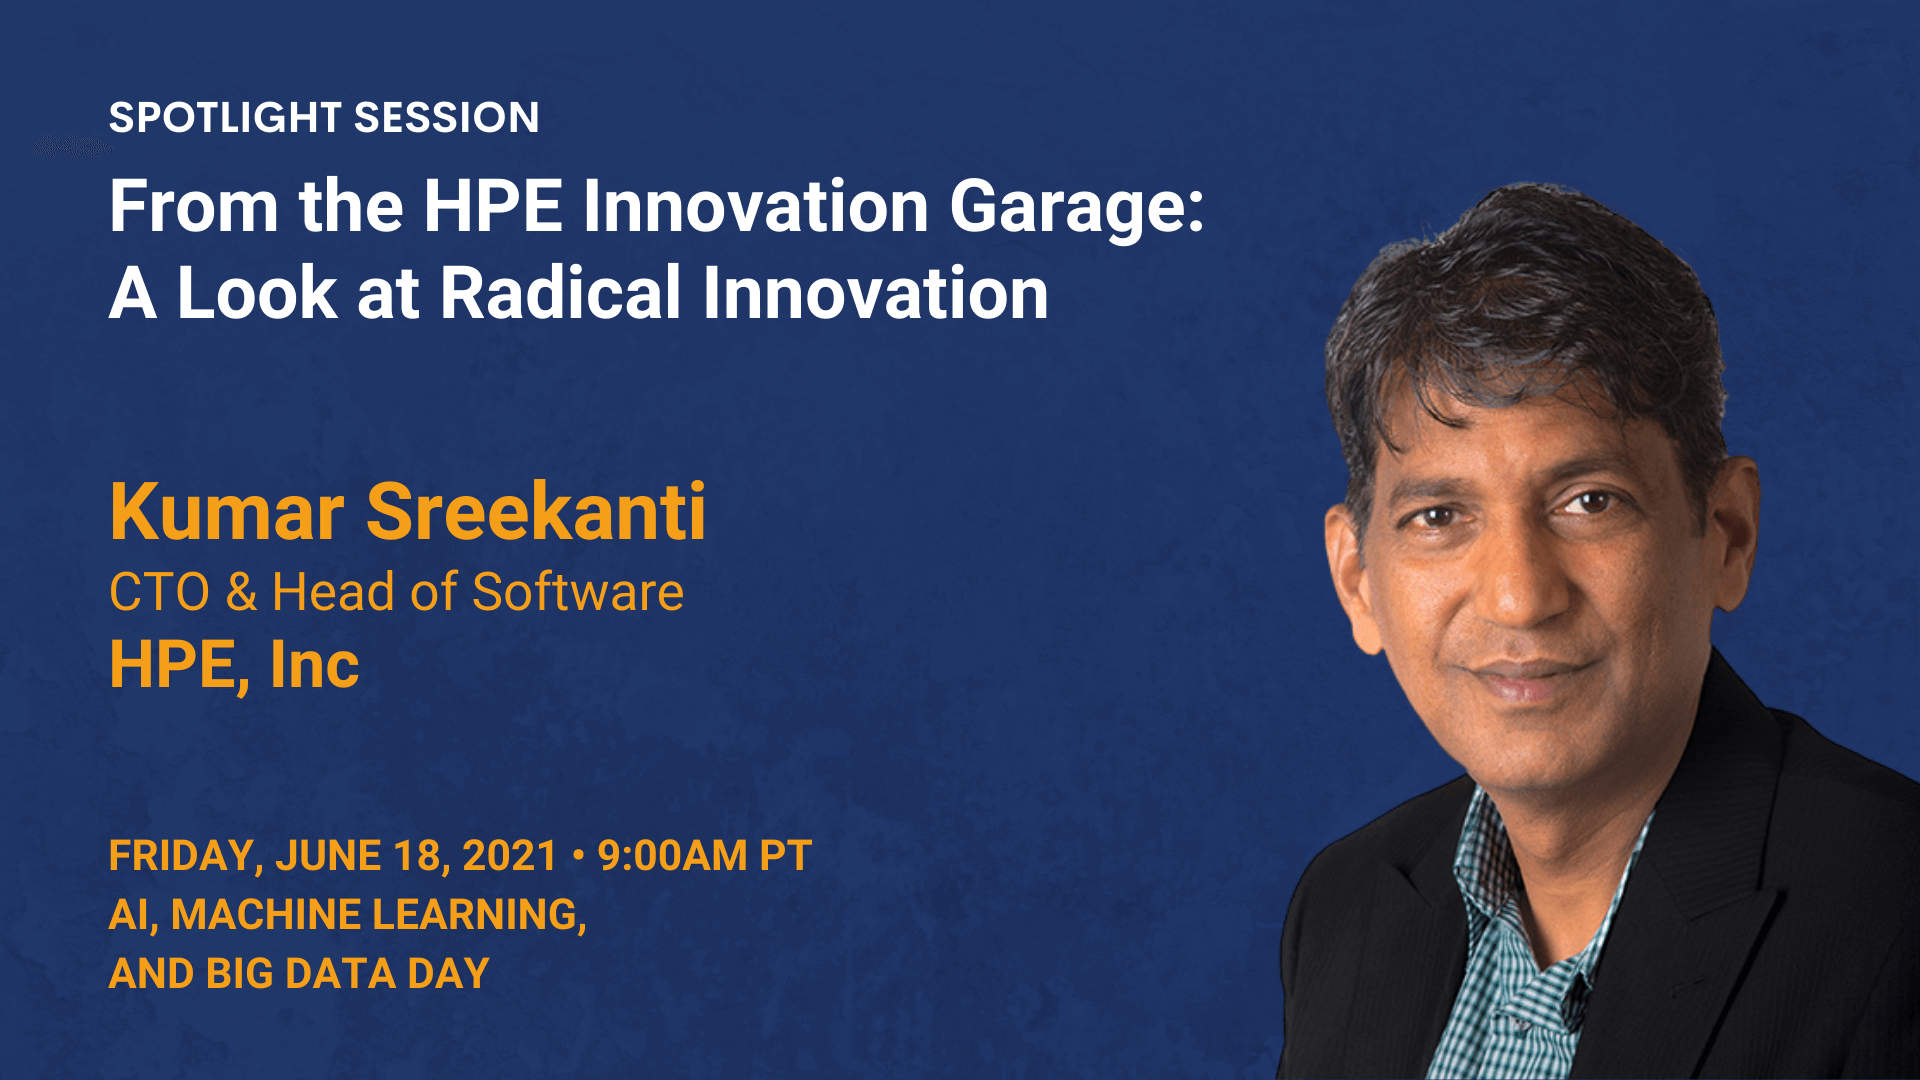 From the HPE Innovation Garage: A Look at Radical Innovation (Kumar Sreekanti)